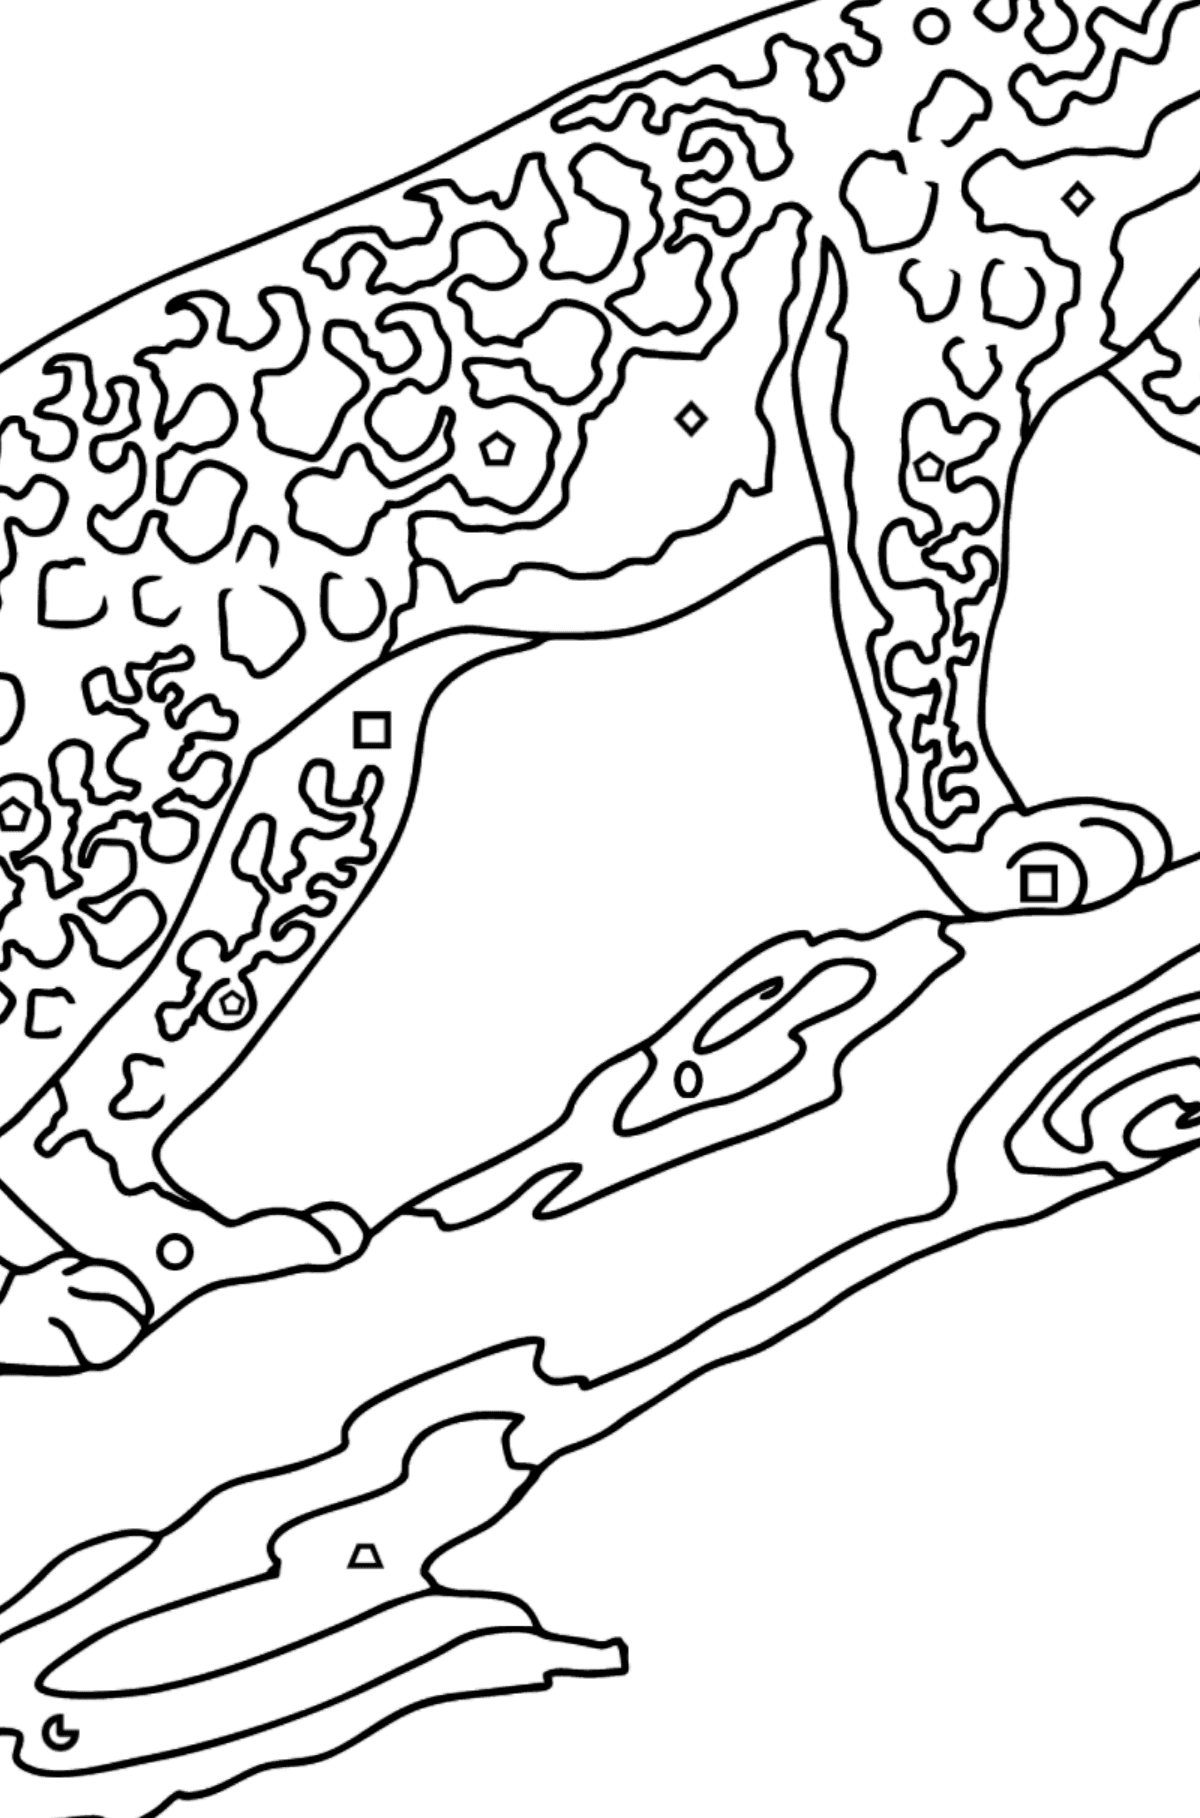 Coloring Page - A Leopard on a Branch - Coloring by Geometric Shapes for Kids